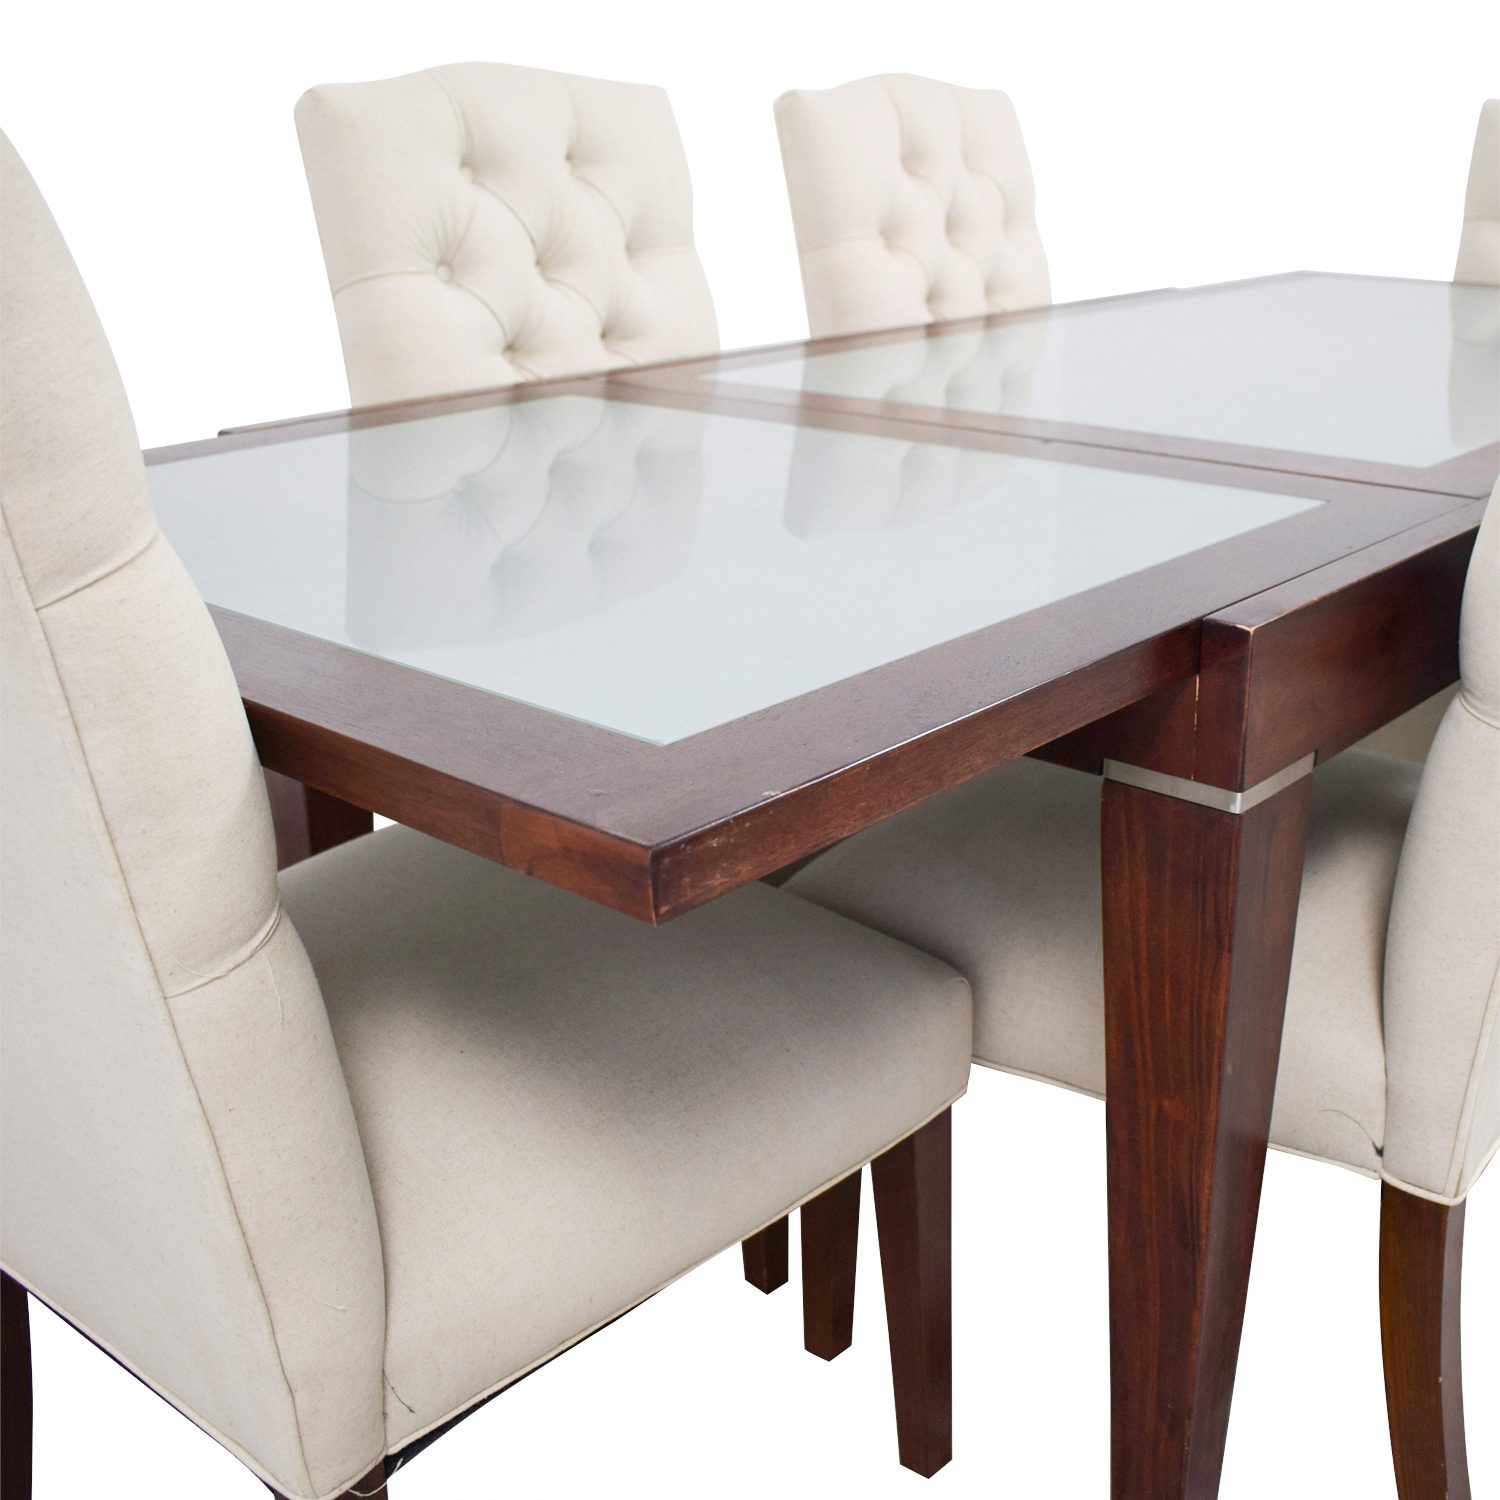 West Elm West Elm Extendable Glass & Wood Dining Set with Upholstered Tufted Chairs nyc